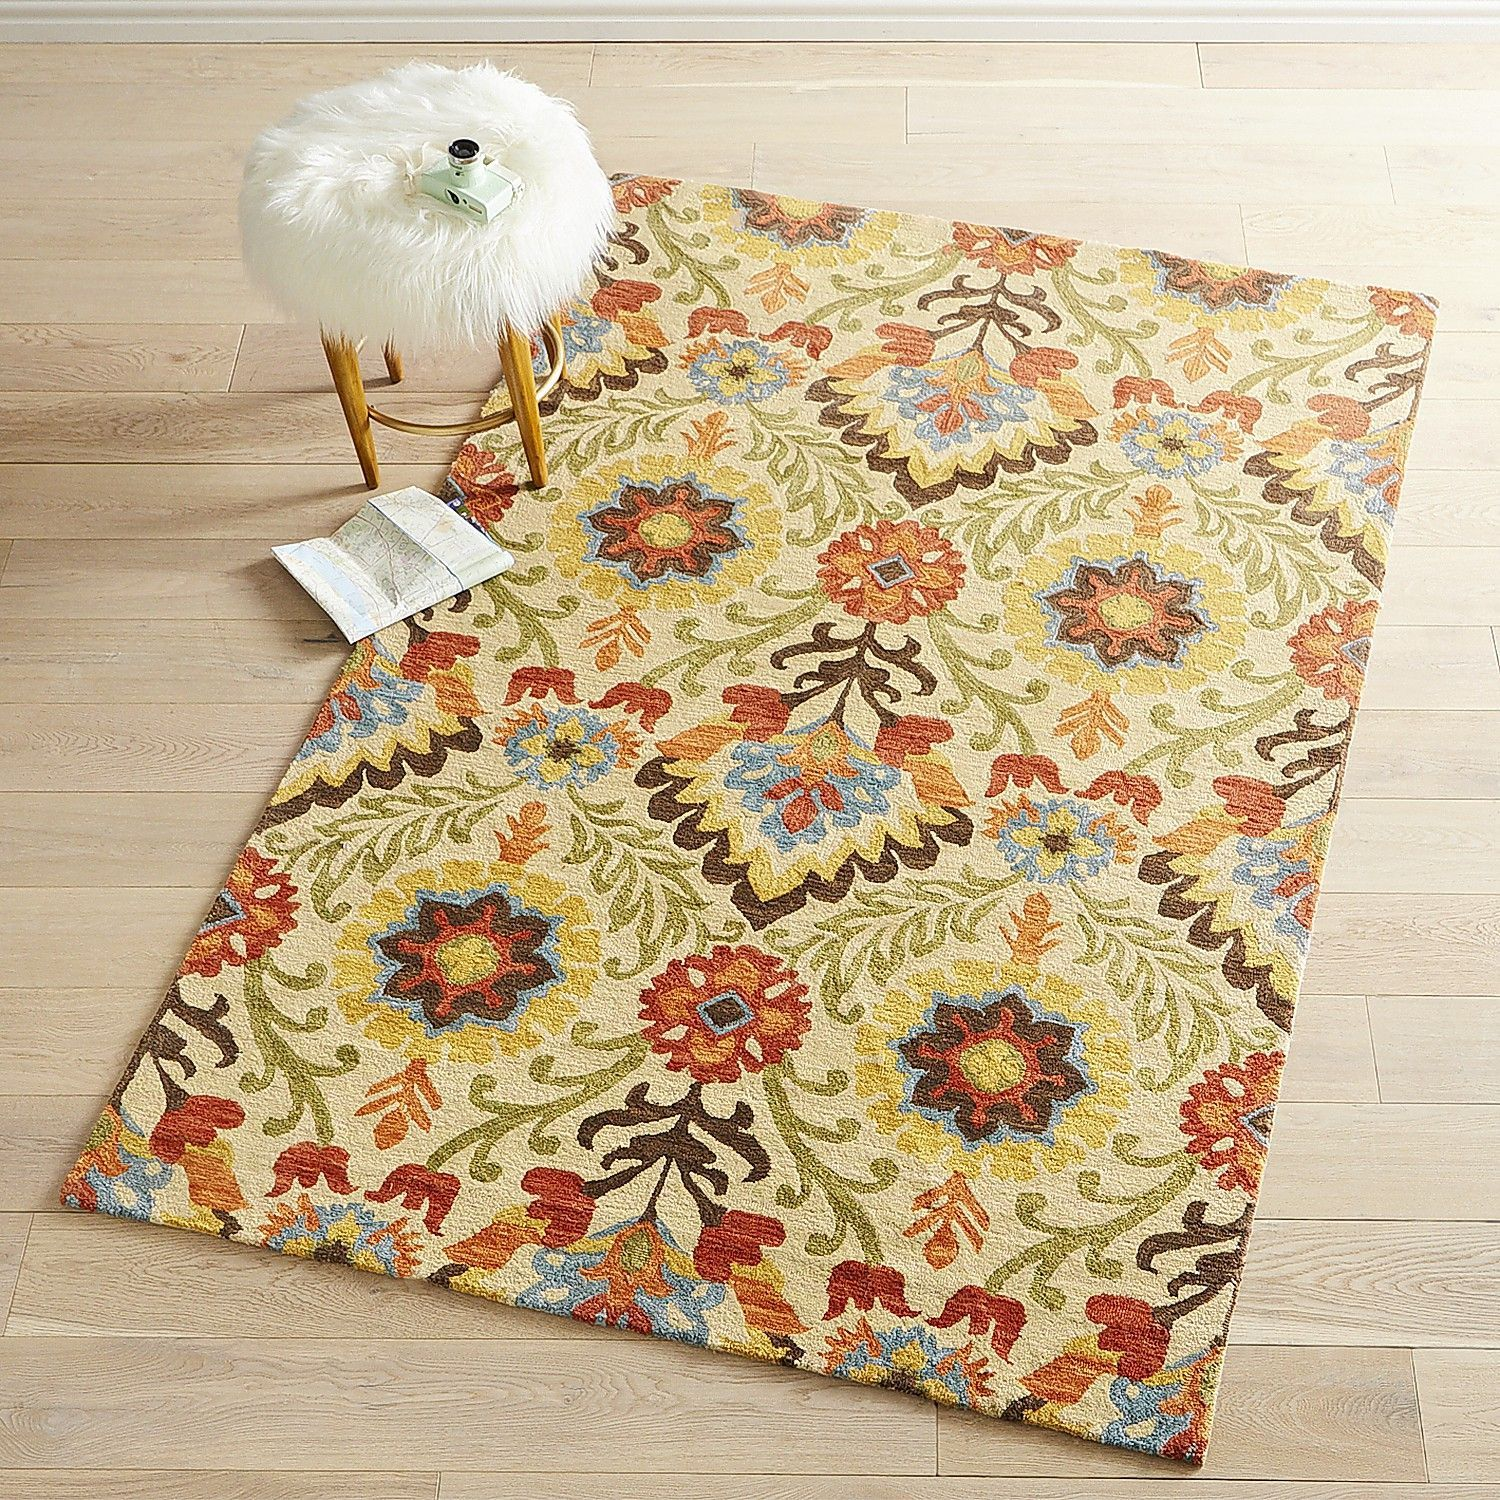 pier 1 living room rugs%0A Suzani Spice  x   Rug